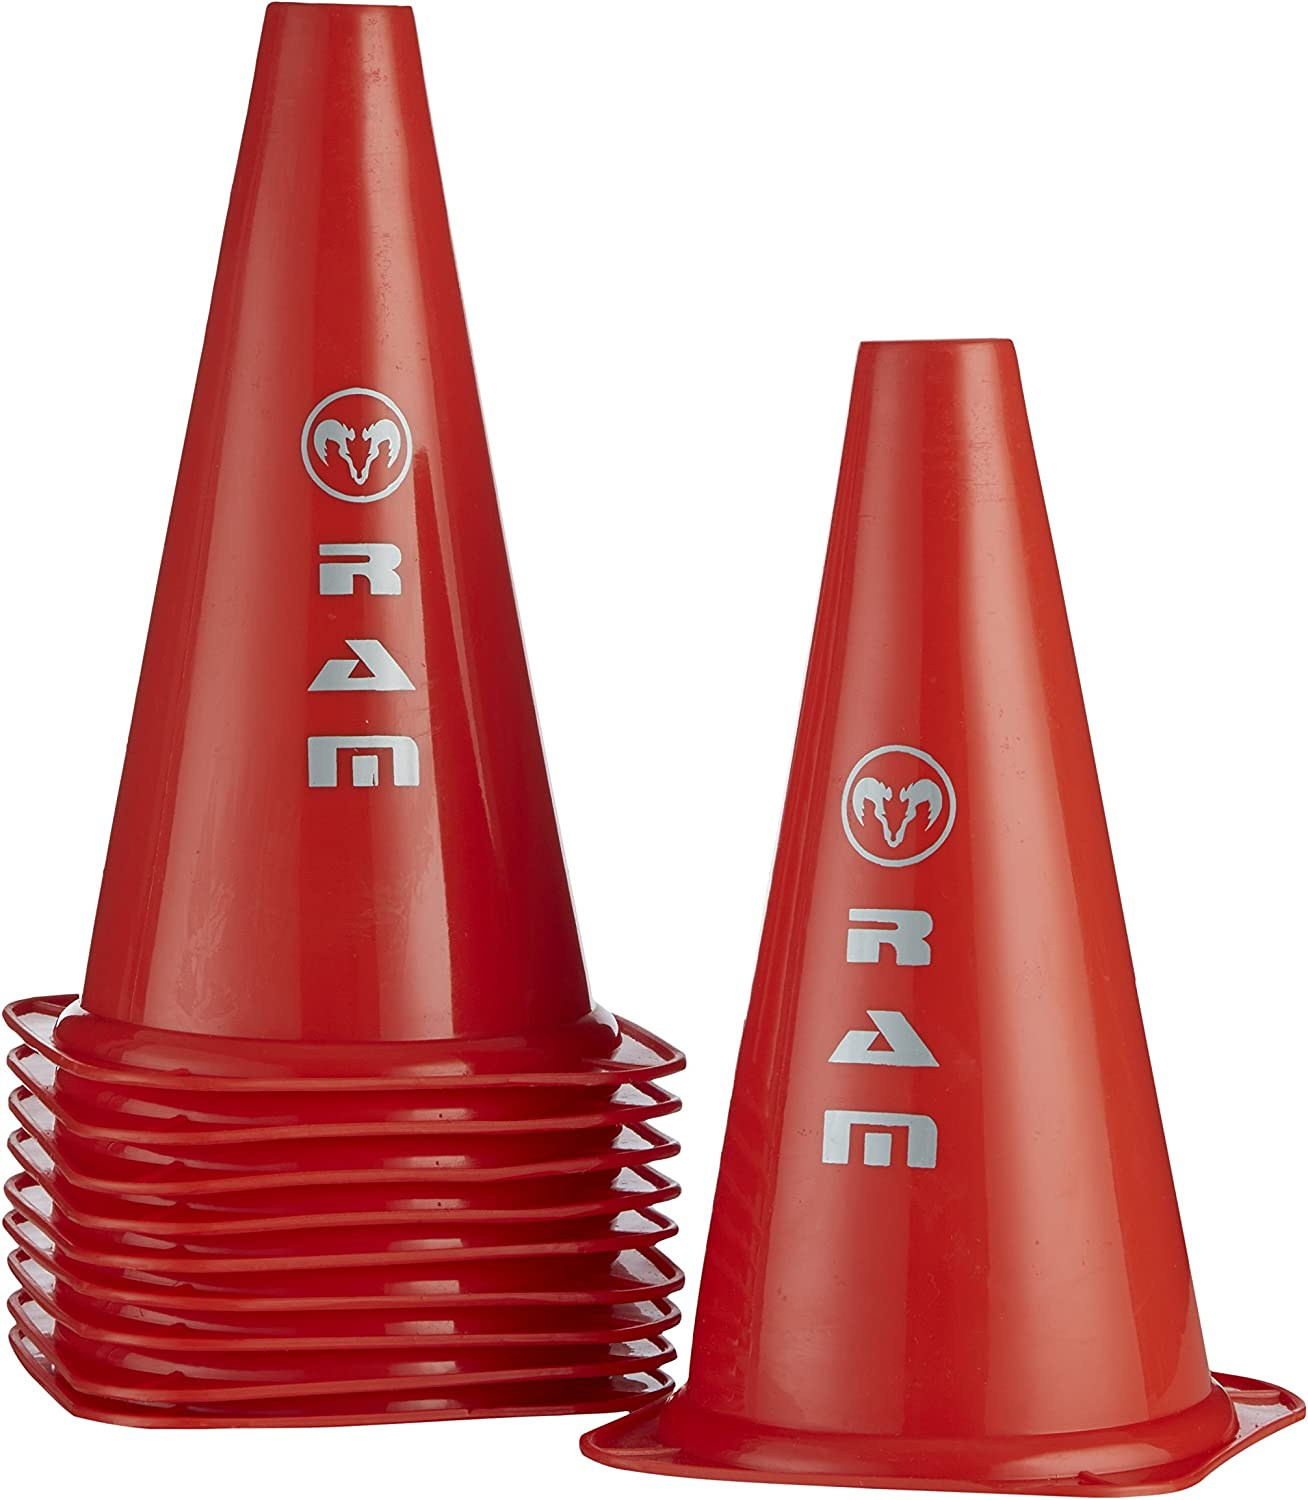 12 Inch Multi-Purpose Sports Training Cones Red Ram Traffic Cones Rugby Supplied In Drawstring Carry Bag Set Of 10